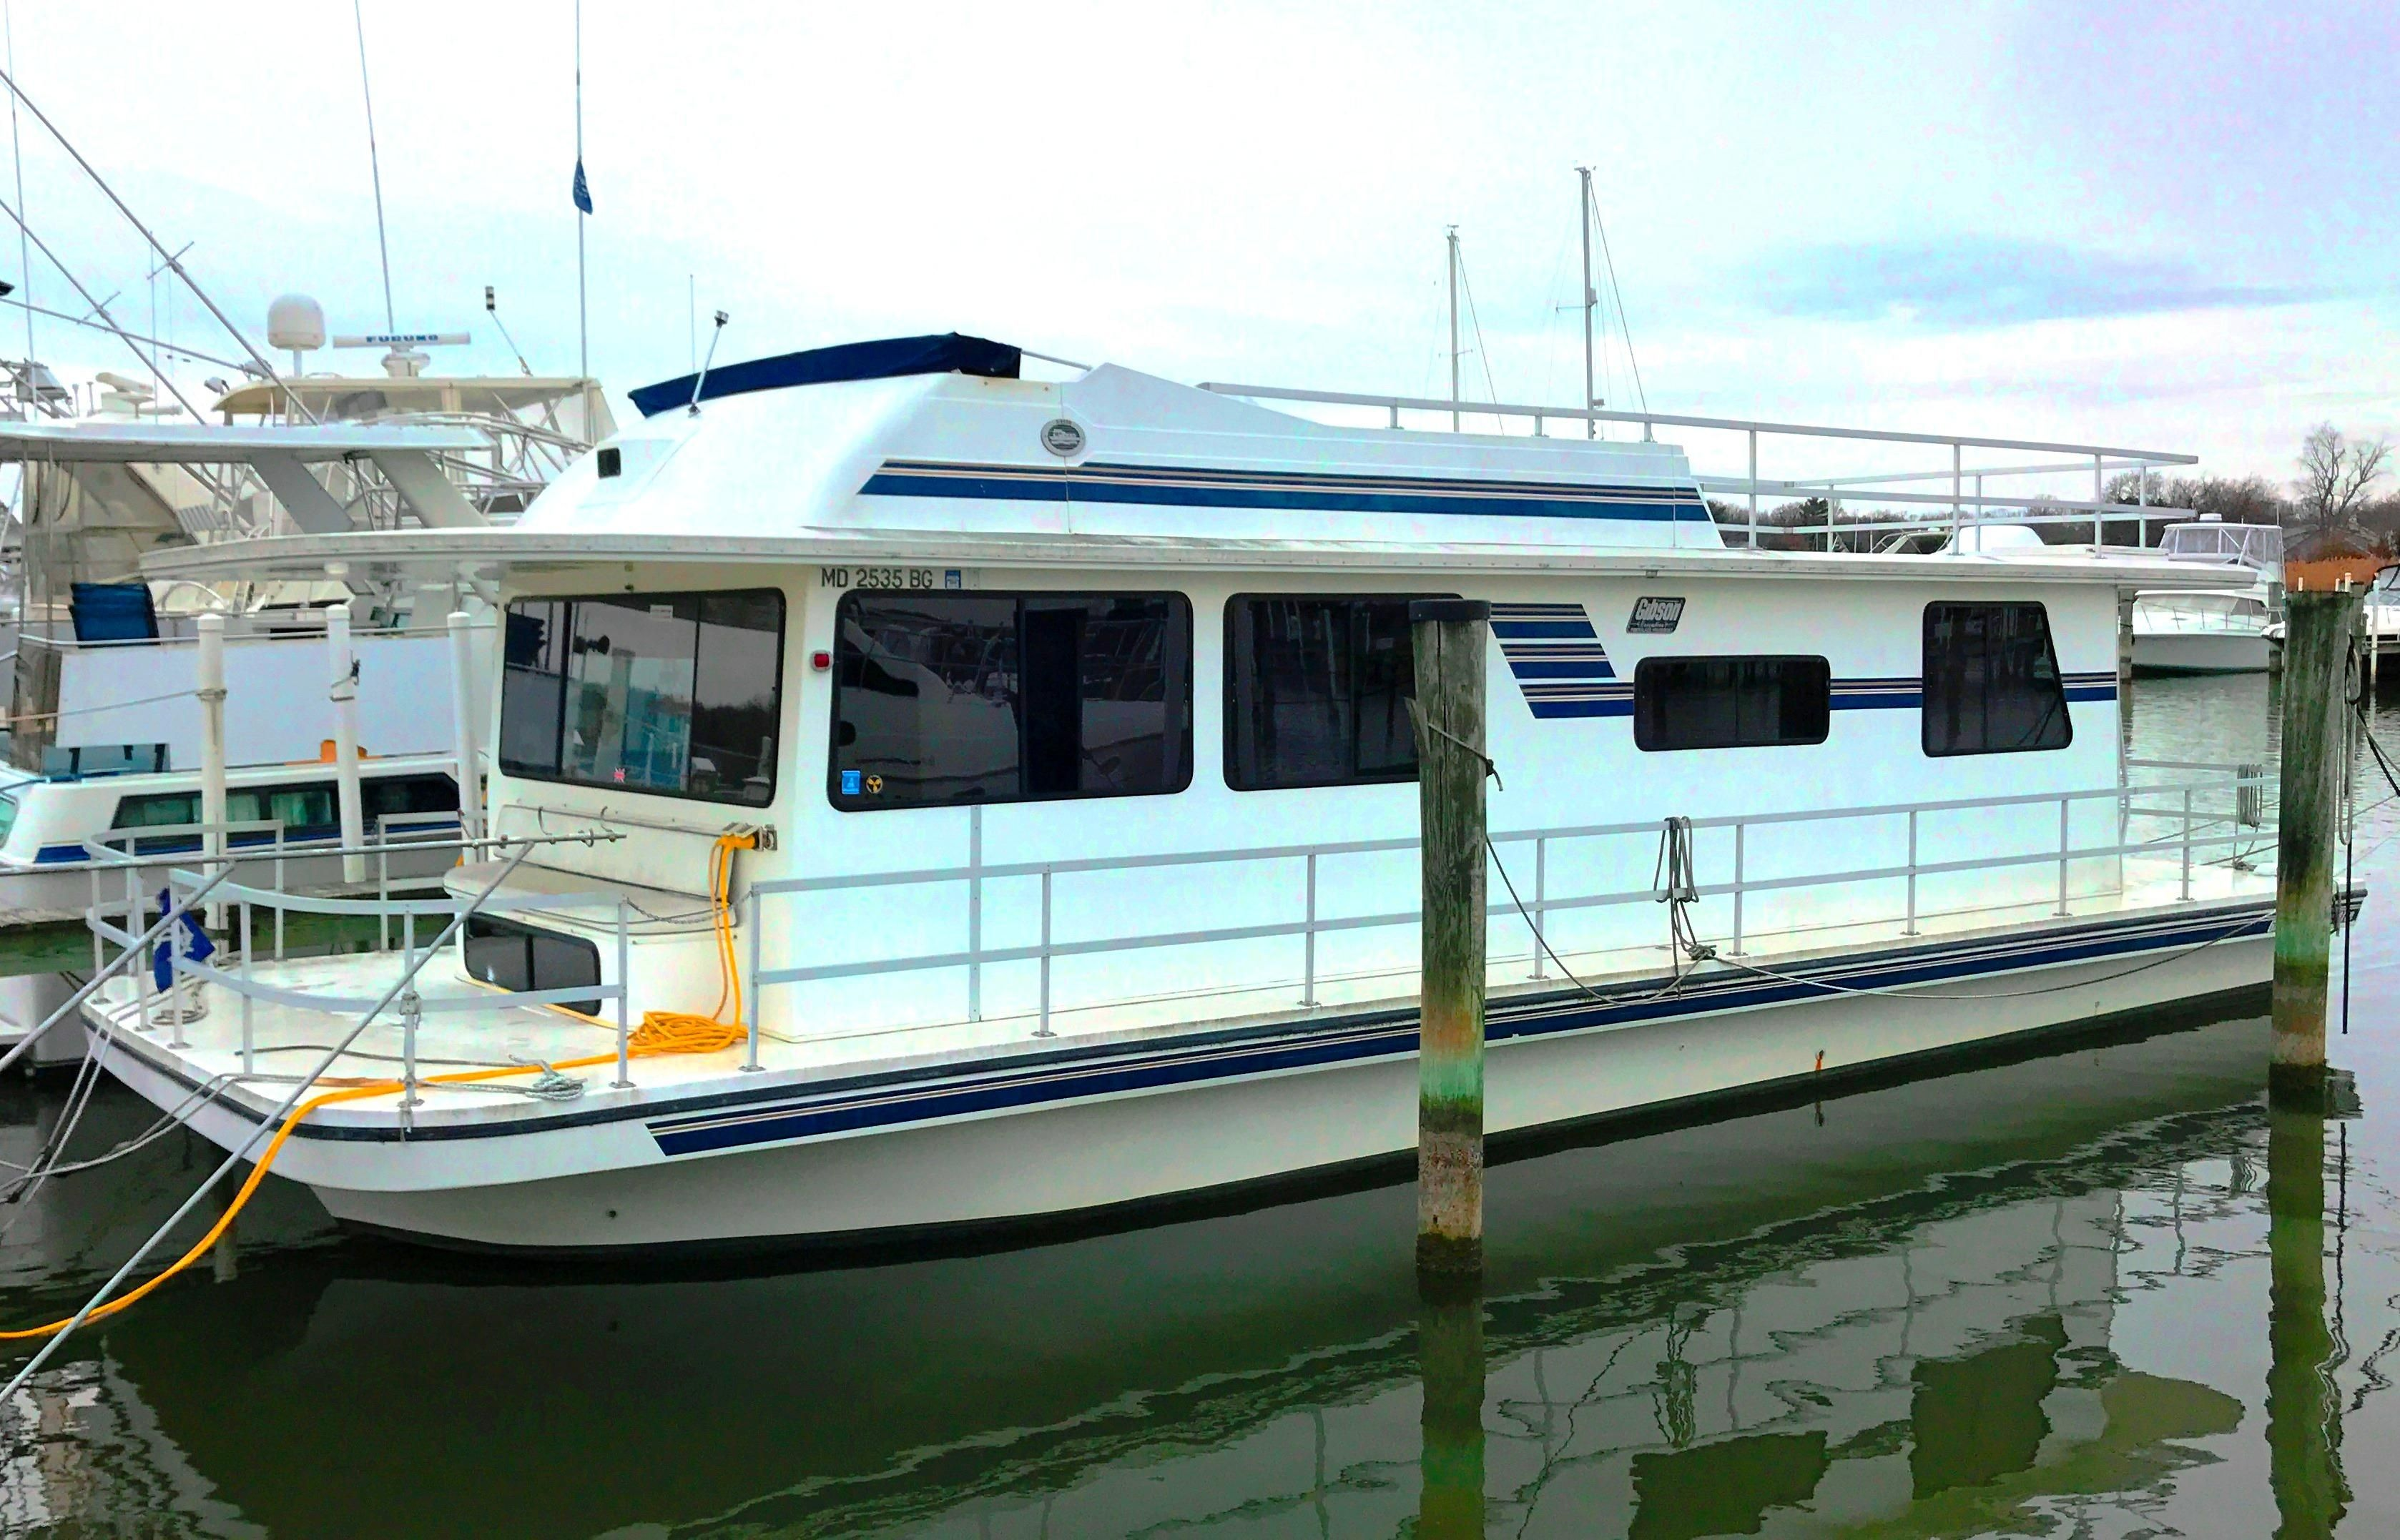 Twin Cities Ford Dealers >> 2003 Gibson 44 Executive Diesel Houseboat Power Boat For Sale - www.yachtworld.com